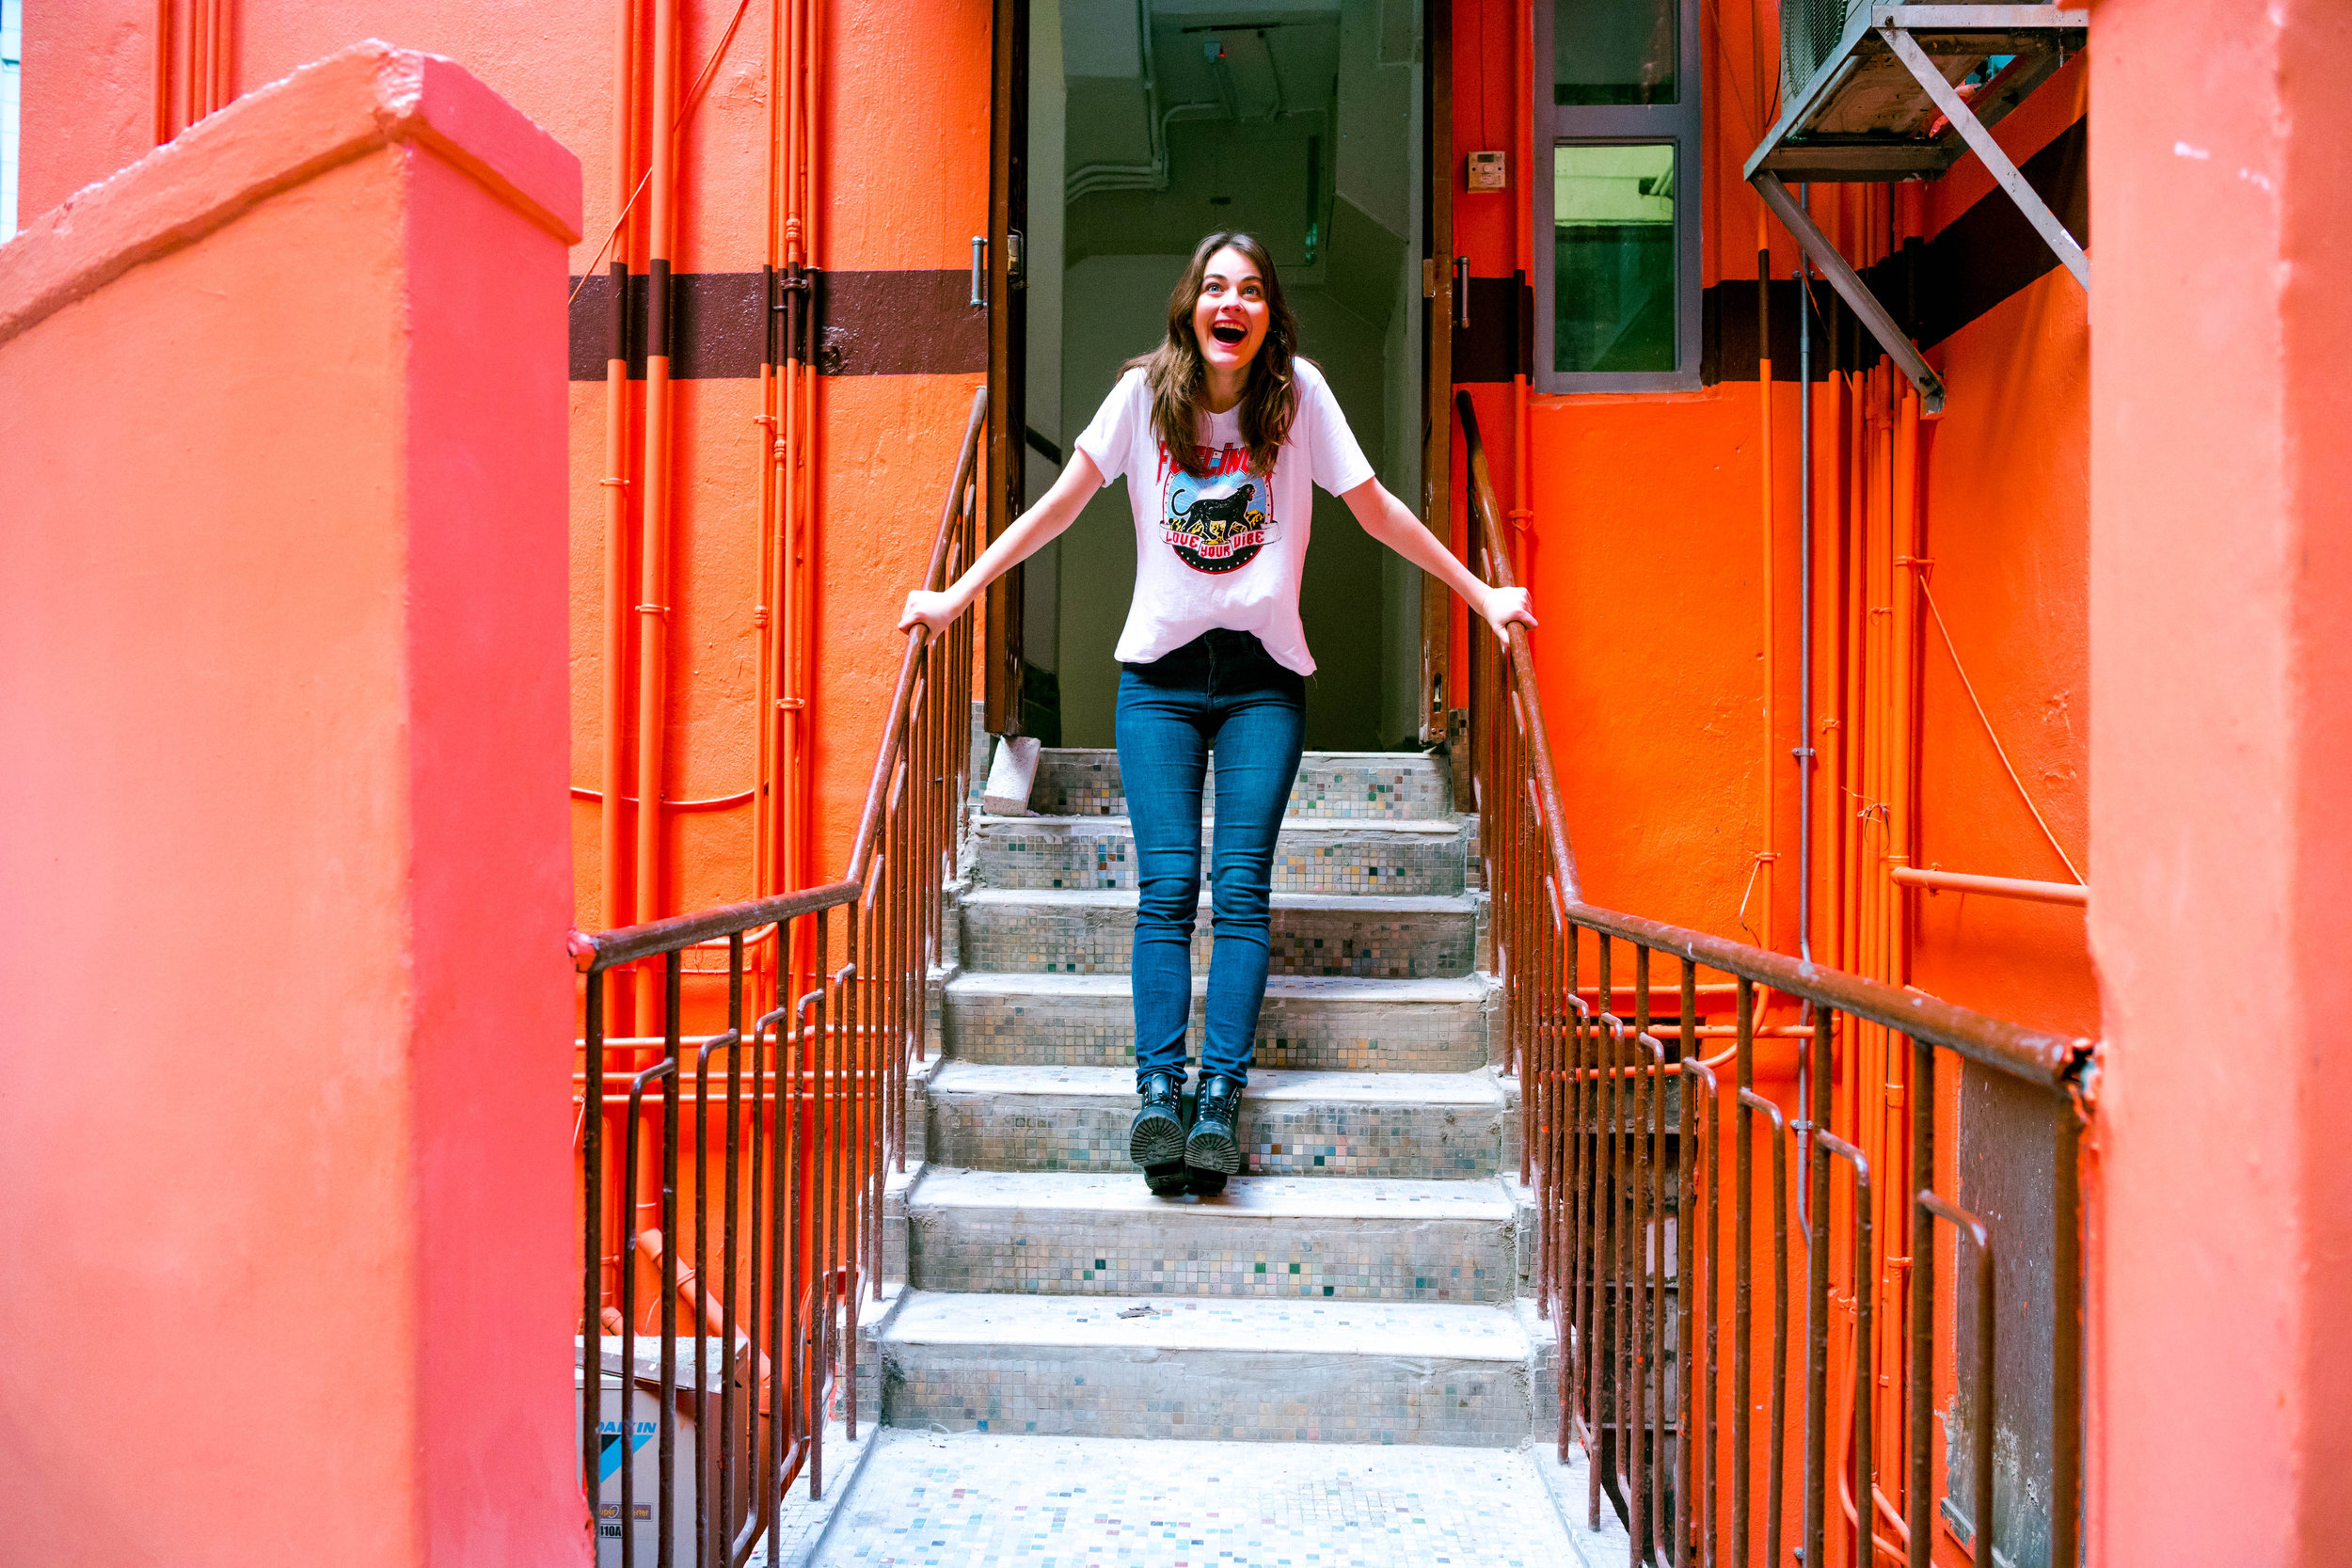 28 Lux, f/5.6 - Fooling around at the entranceway of a very orange structure.